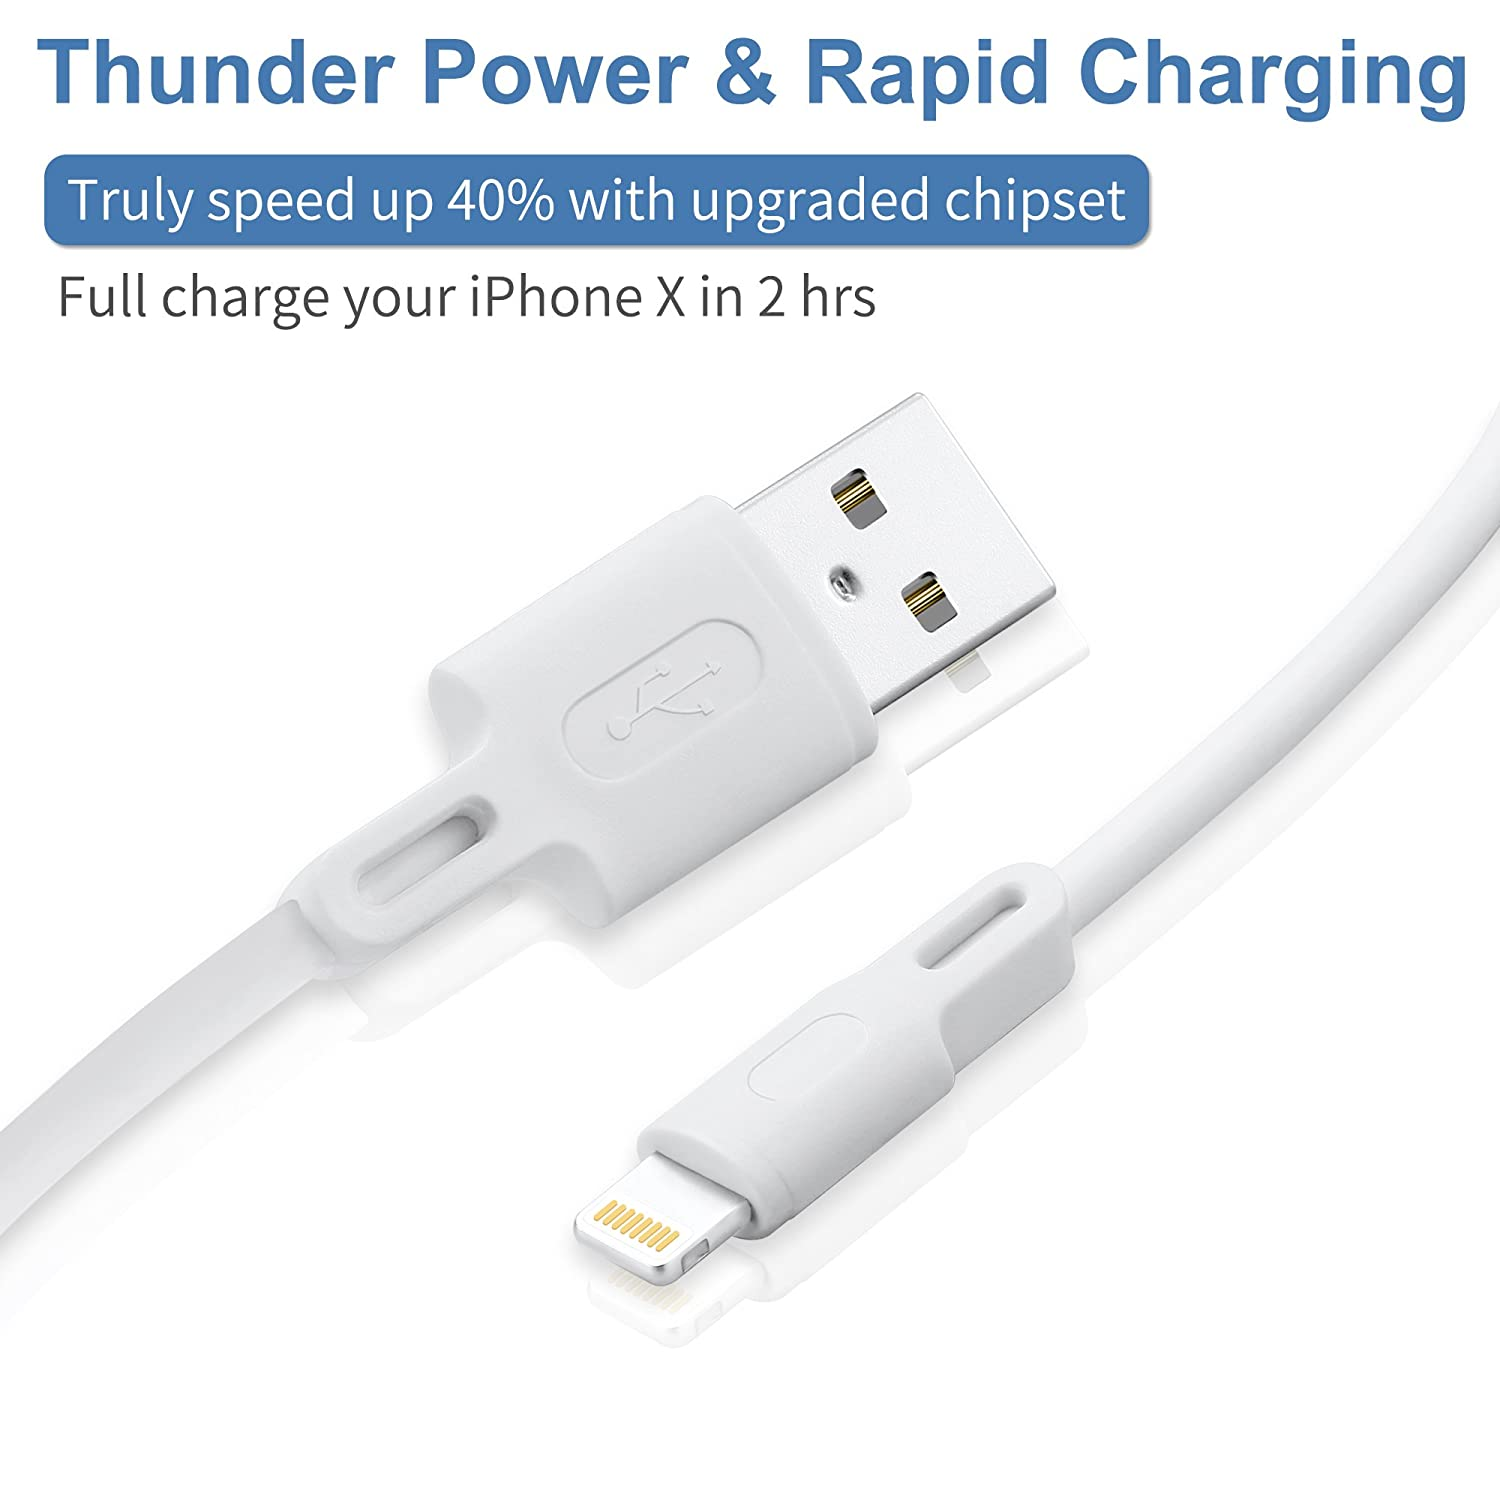 Fast USB Charging Cords Data Cord Compatible with Phone XS MAX XR X 8 8 Plus 7 7 Plus 6s 6s Plus 6 6 Plus and More Bkstone Phone Charger